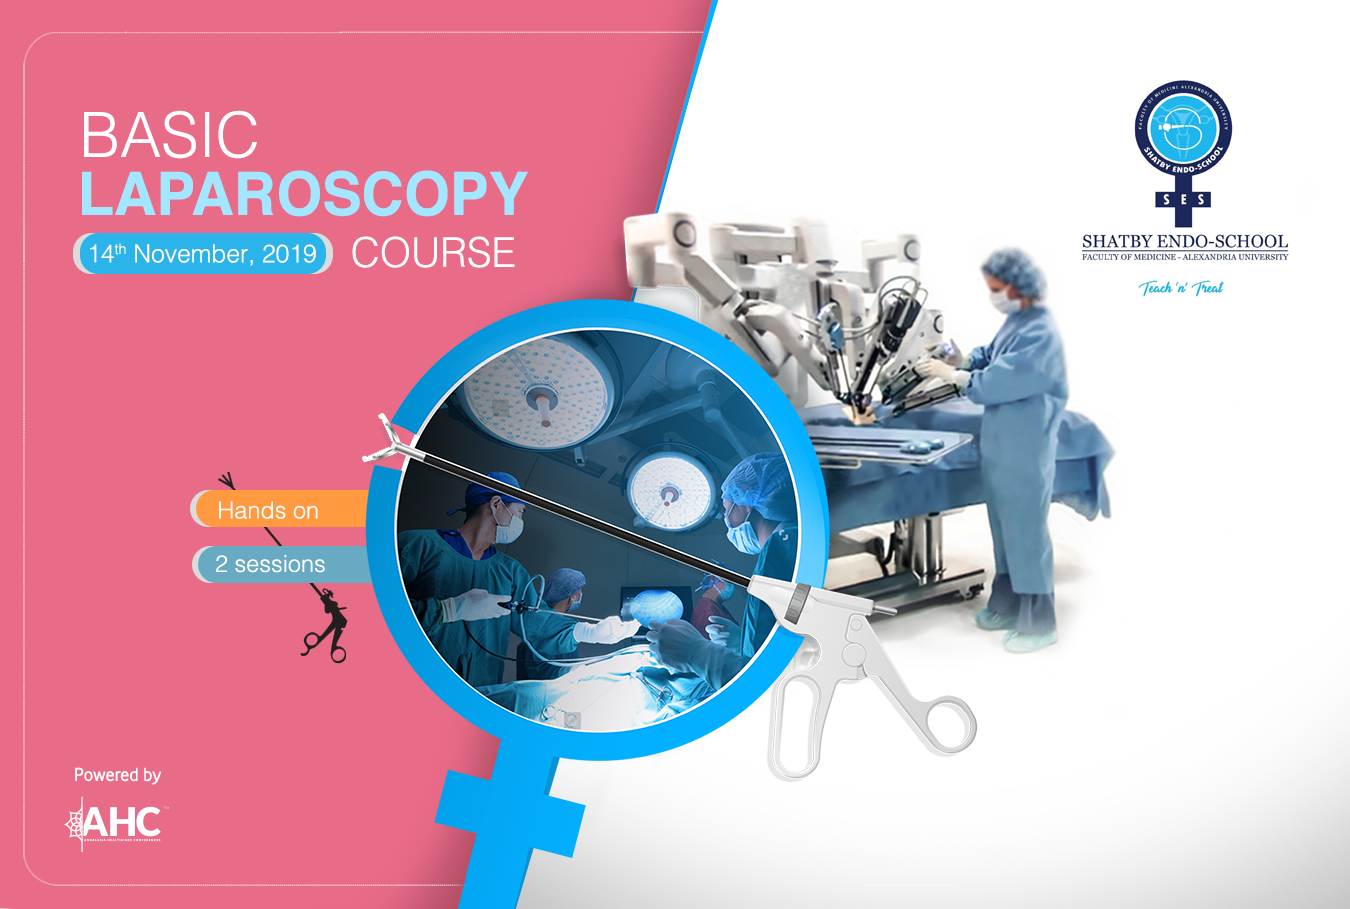 Basic Laparoscopy Course